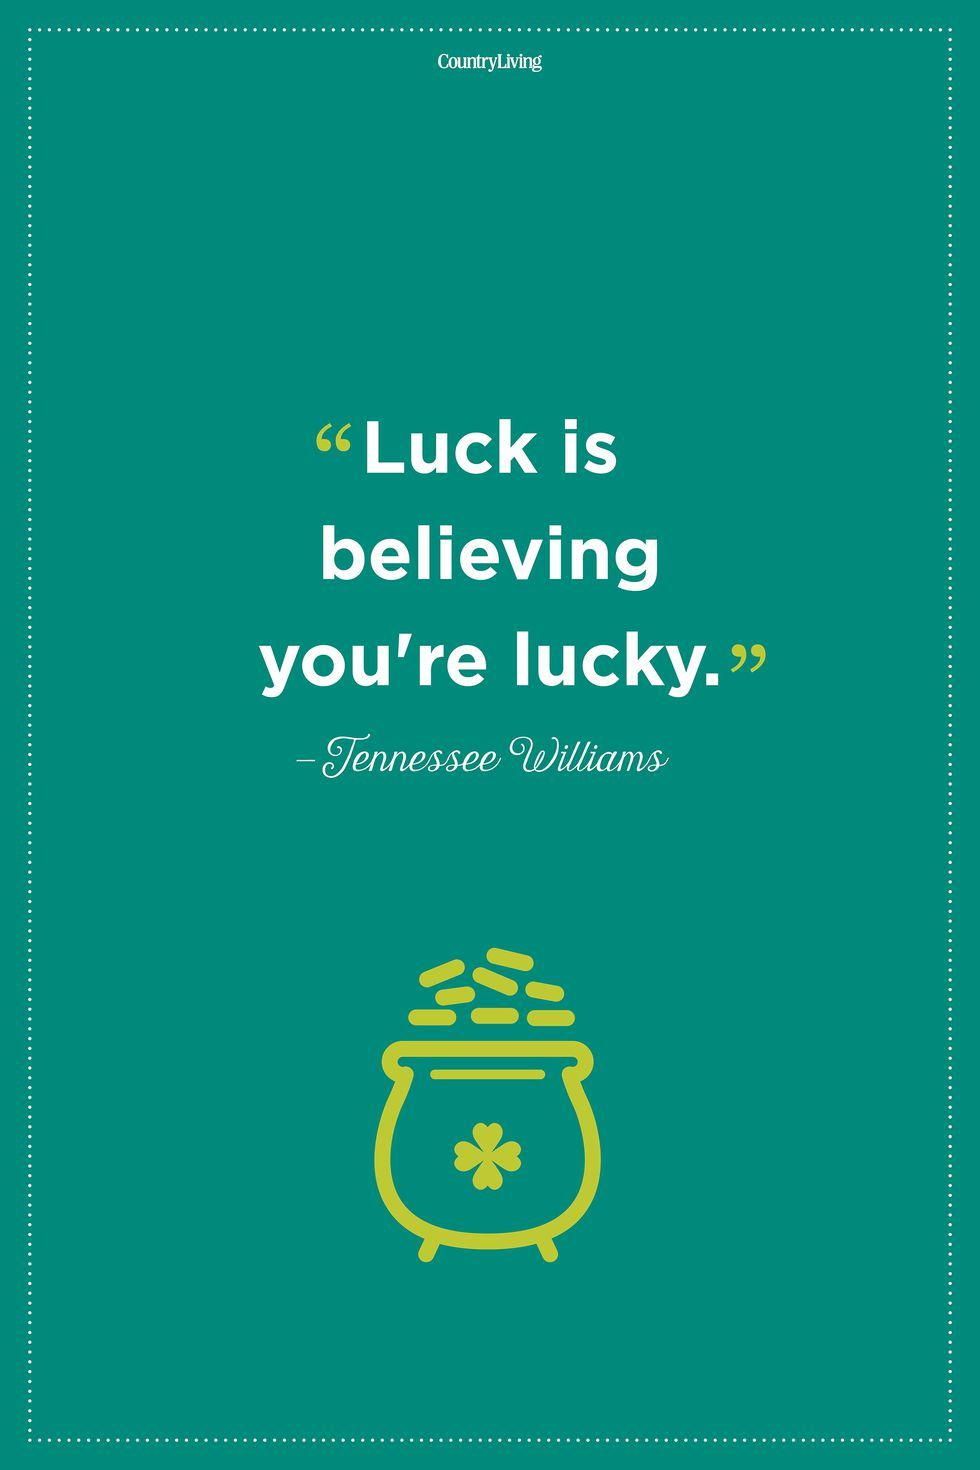 40 Best St. Patrick's Day Quotes to Bring You Tons of Luck